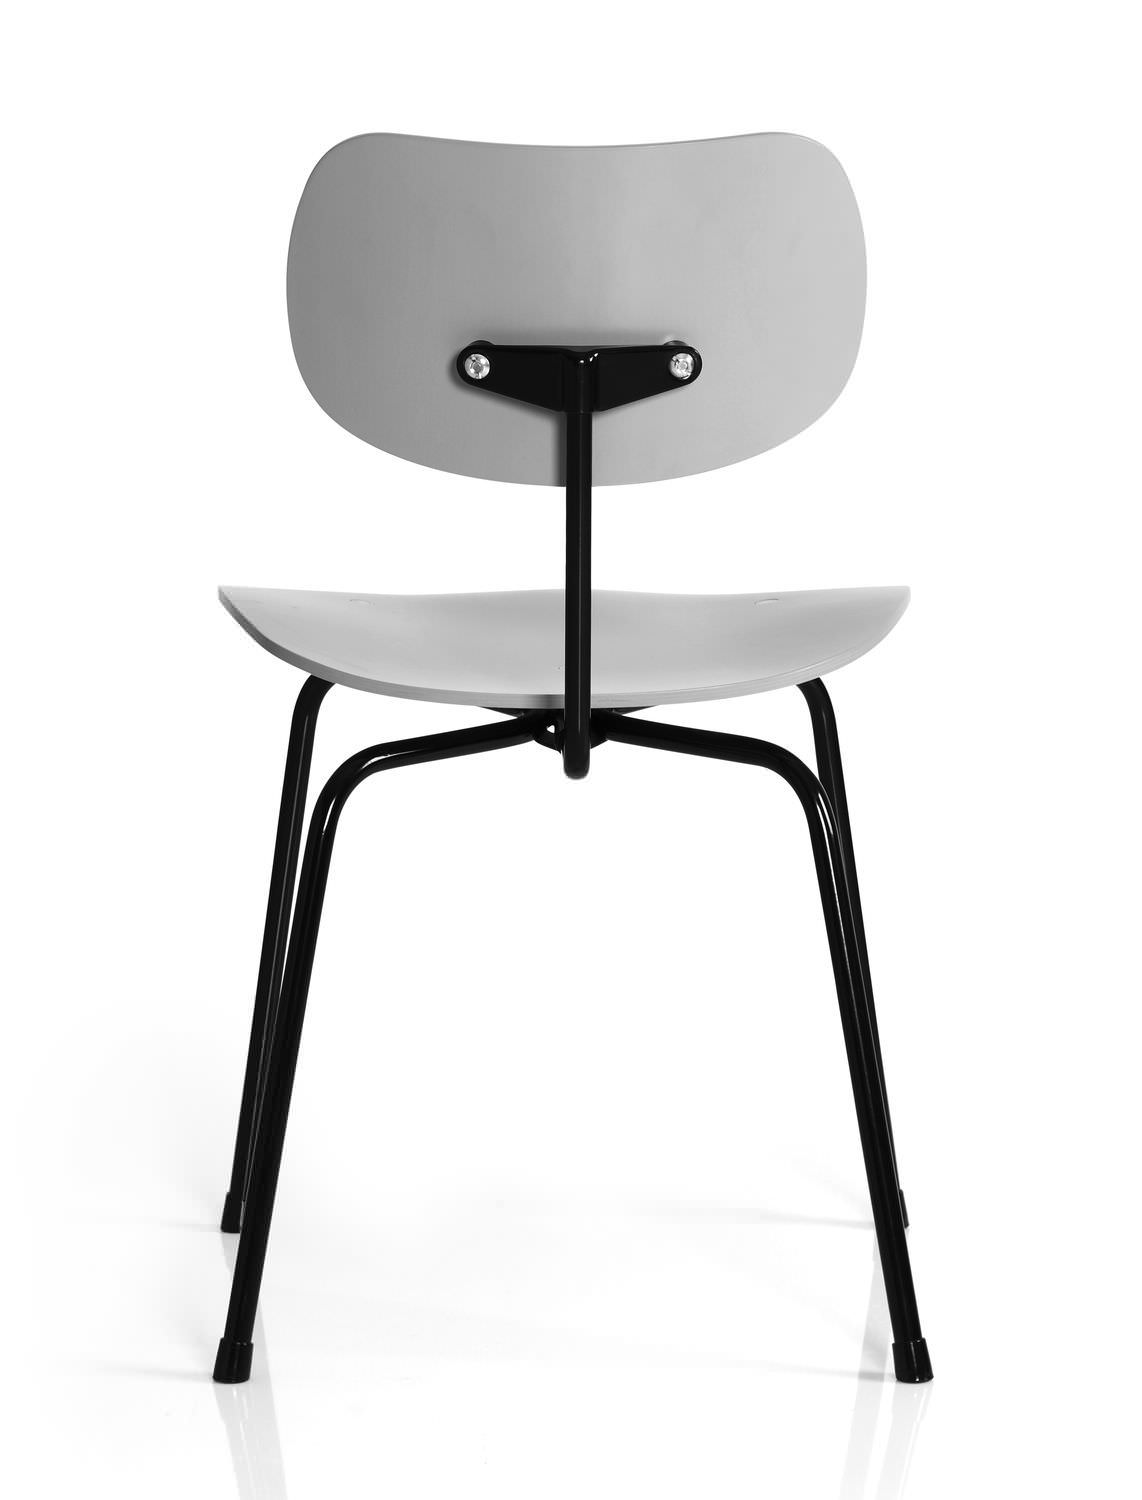 Image result for Egon Eiermann se 68 chair